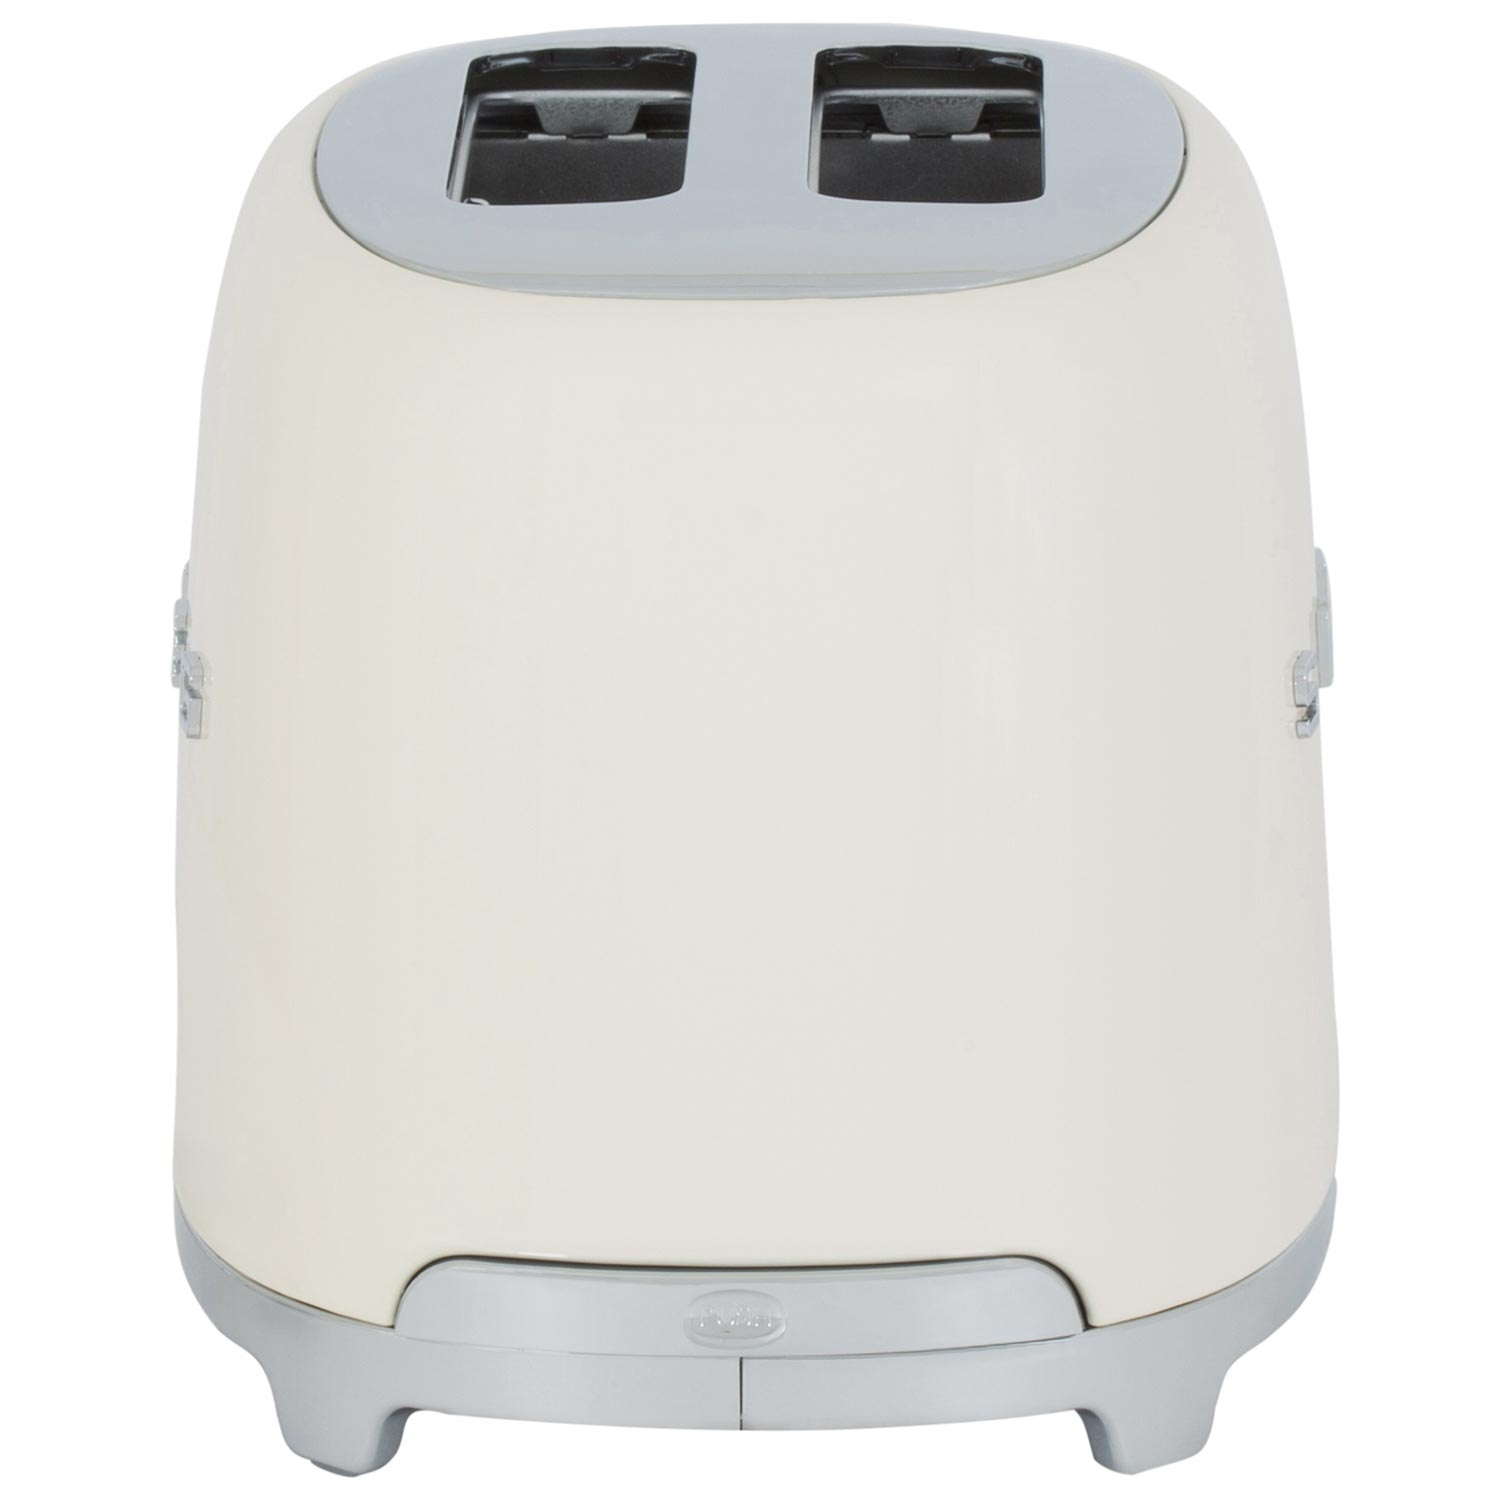 Smeg 2 Slice Toaster - Cream - 8